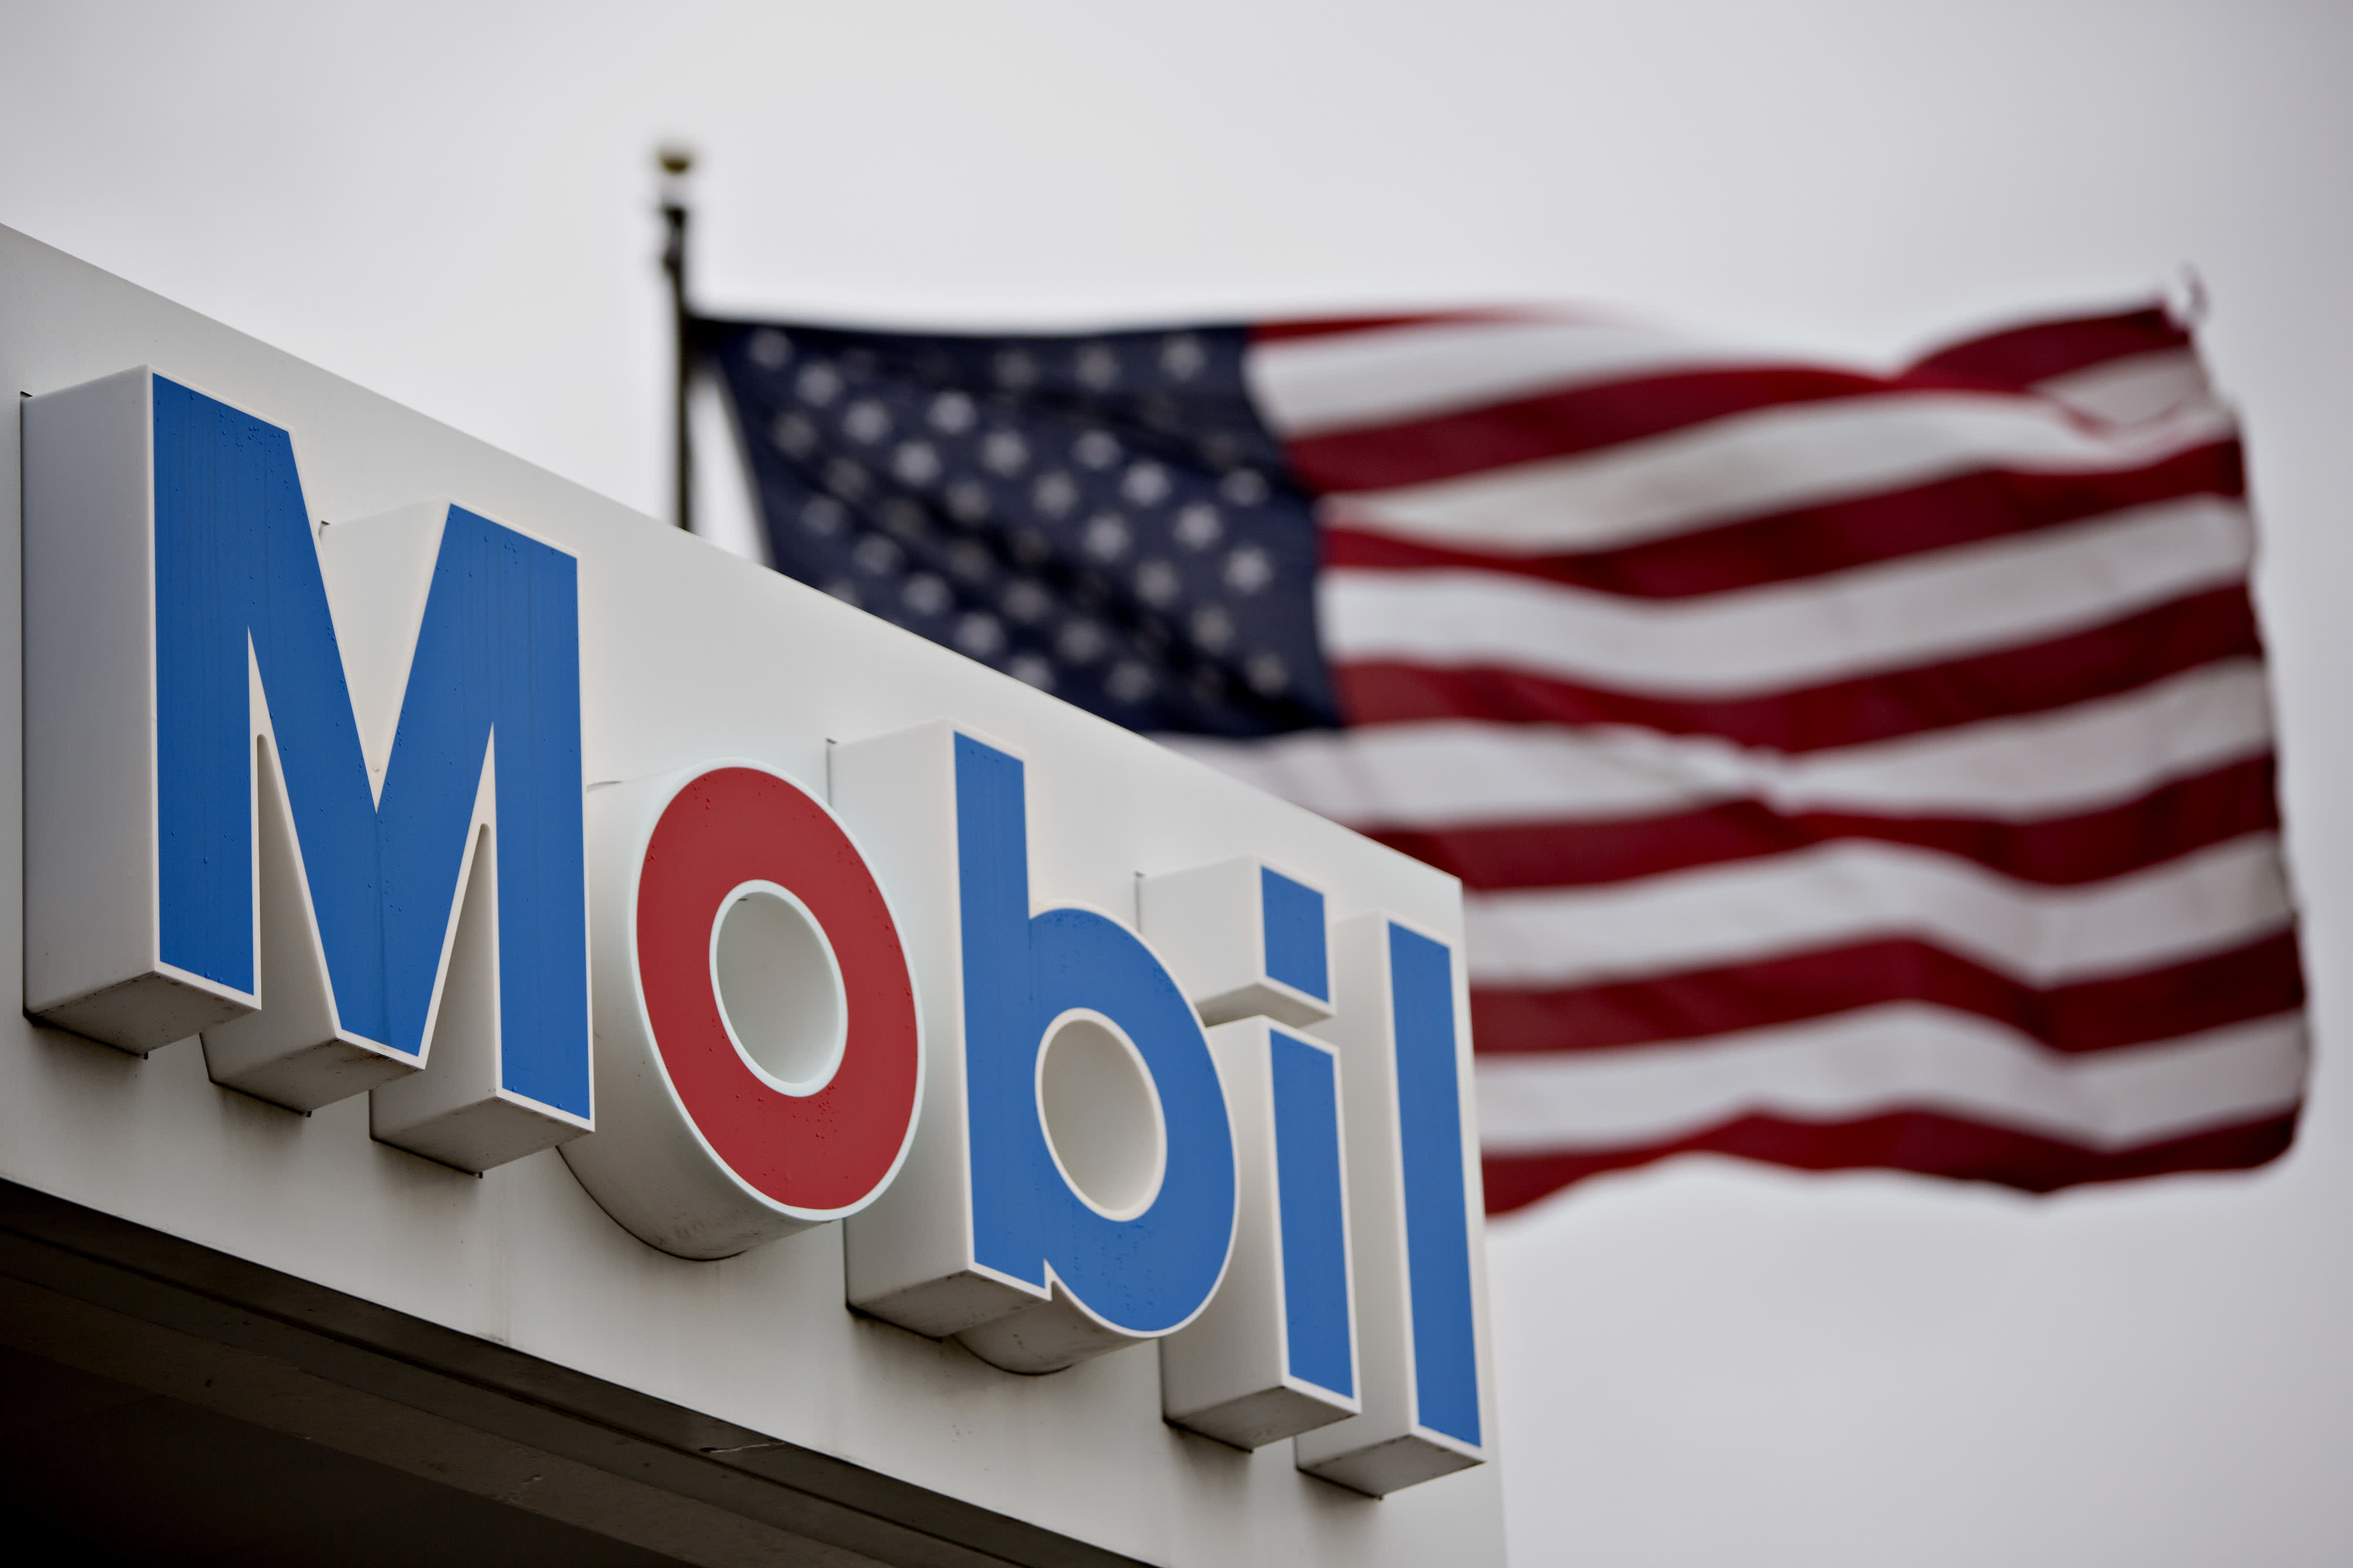 Exxon Mobil will triple production in the Permian basin by 2025